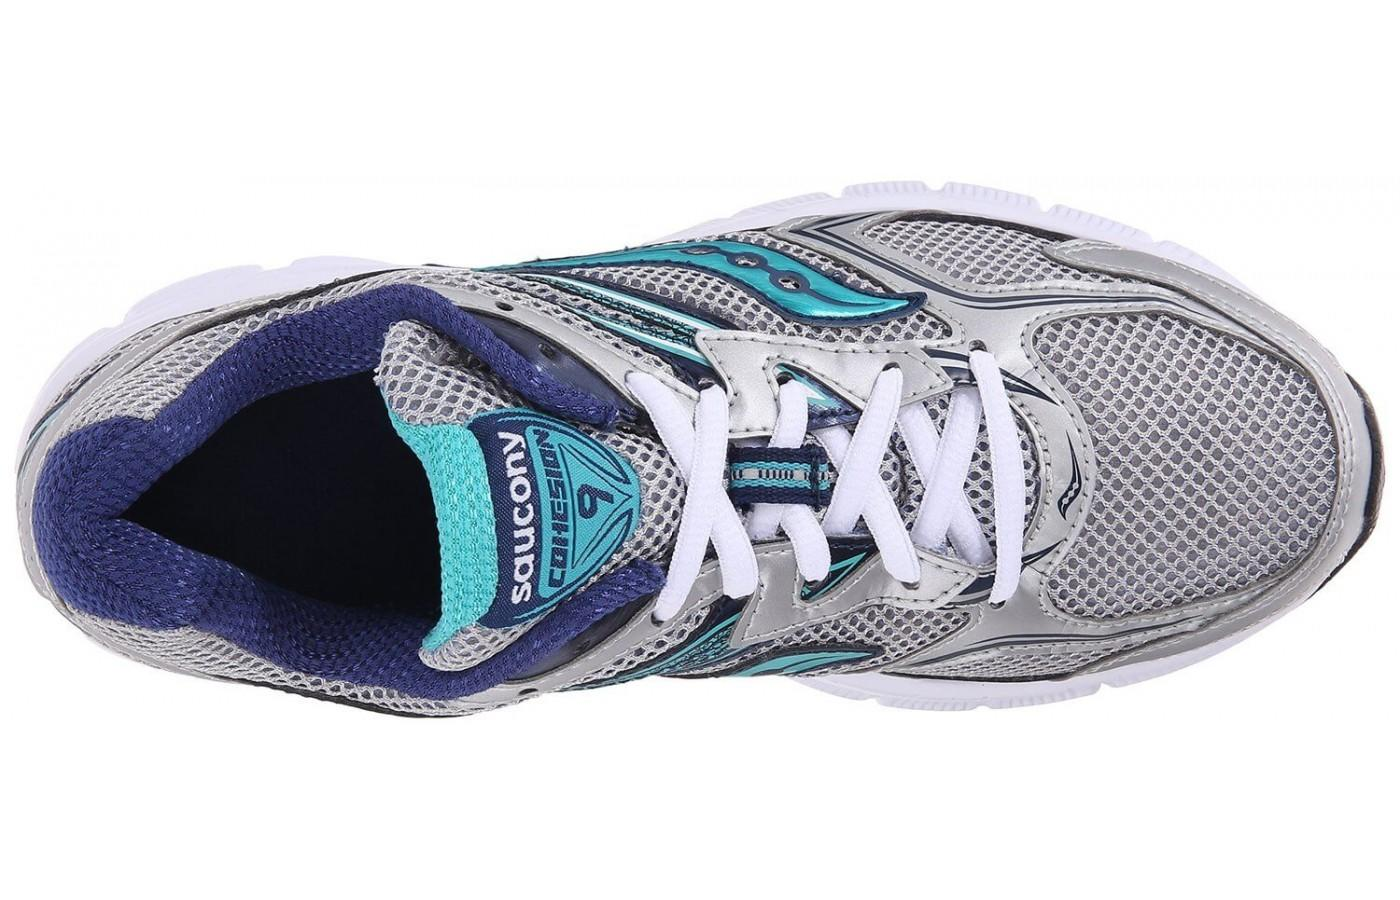 The Saucony Cohesion 9 has an extra-stable heel cup in the sole.